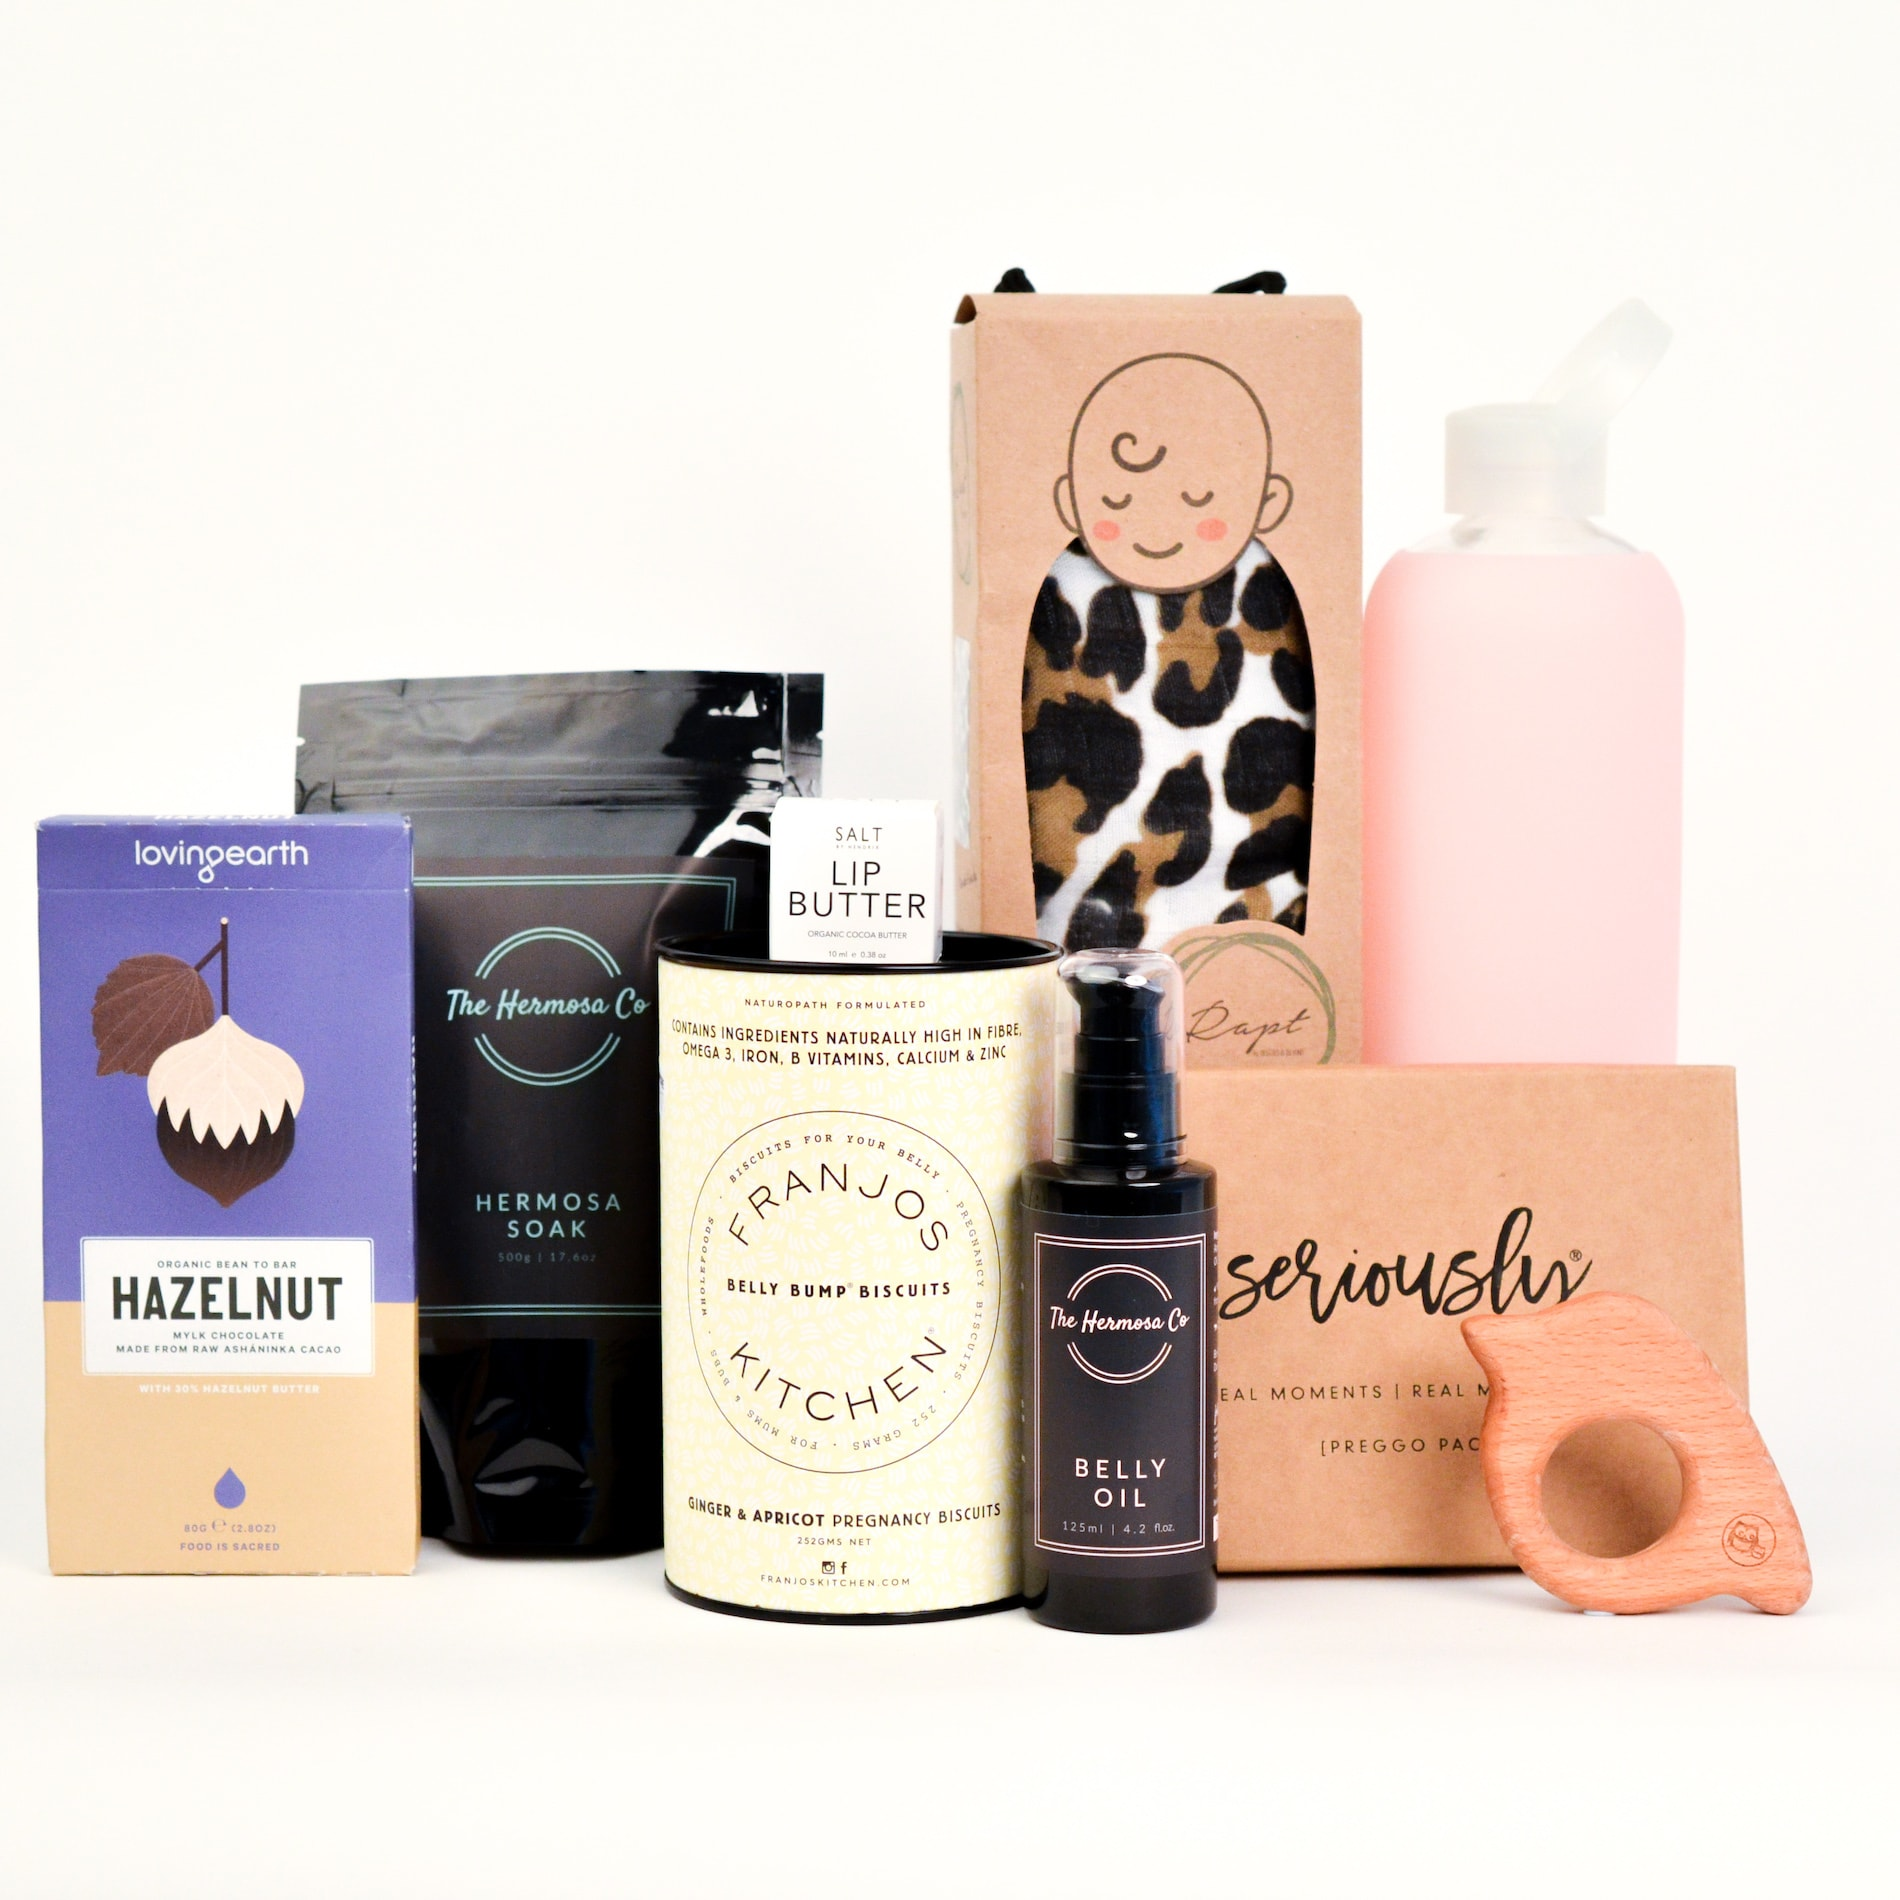 Peach + Polly Products